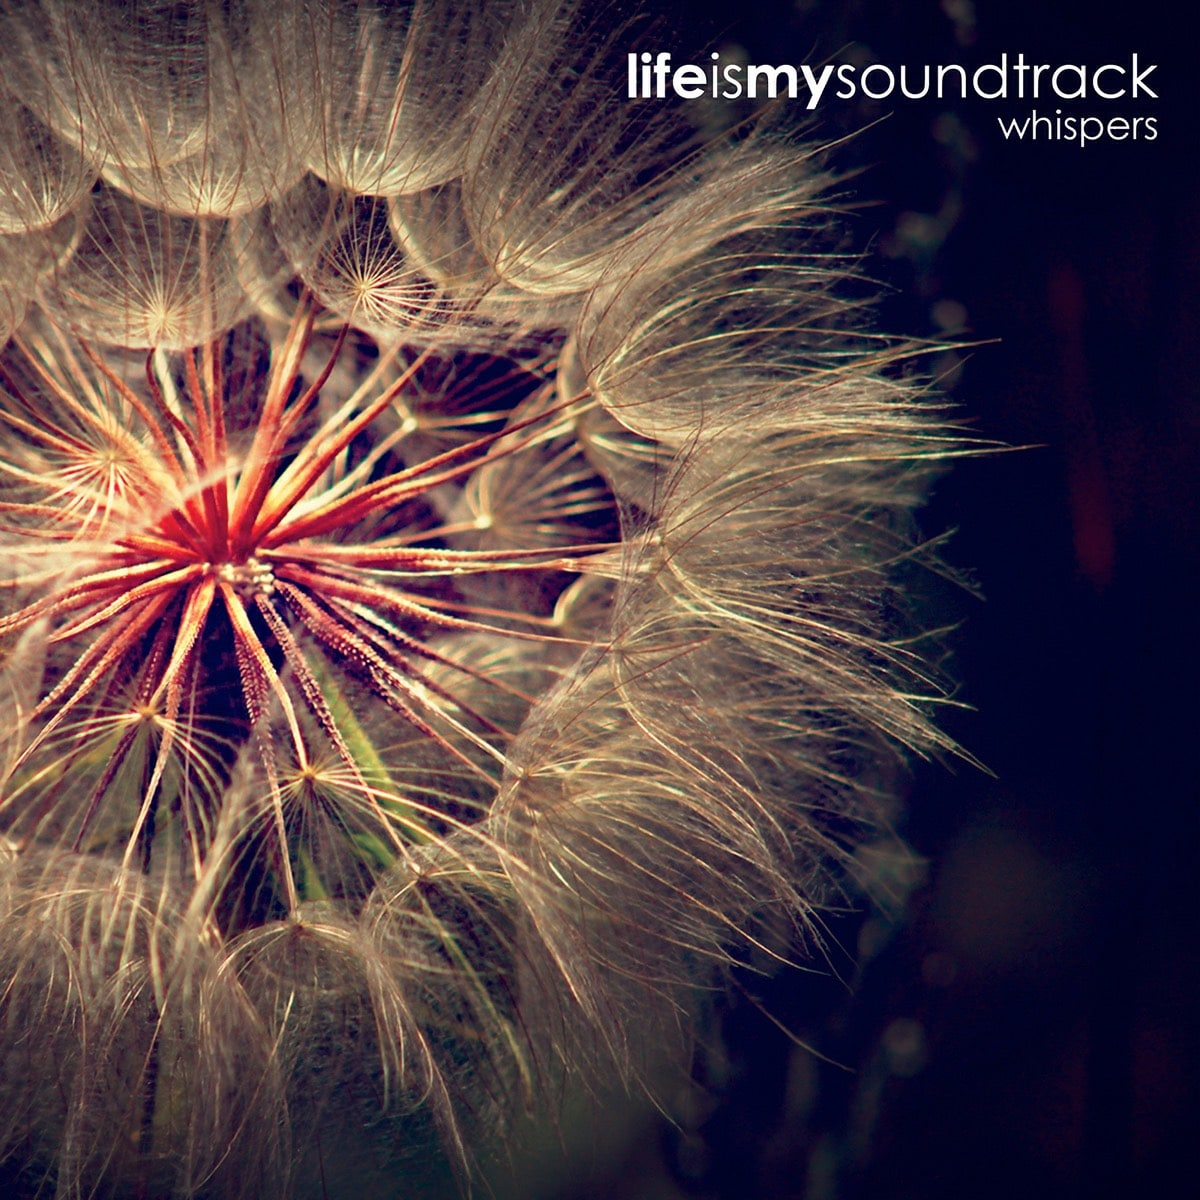 The album Whispers by Life Is My Soundtrack - A duo of delicate, minimalist songs that combine to evoke the sounds of quiet whispers